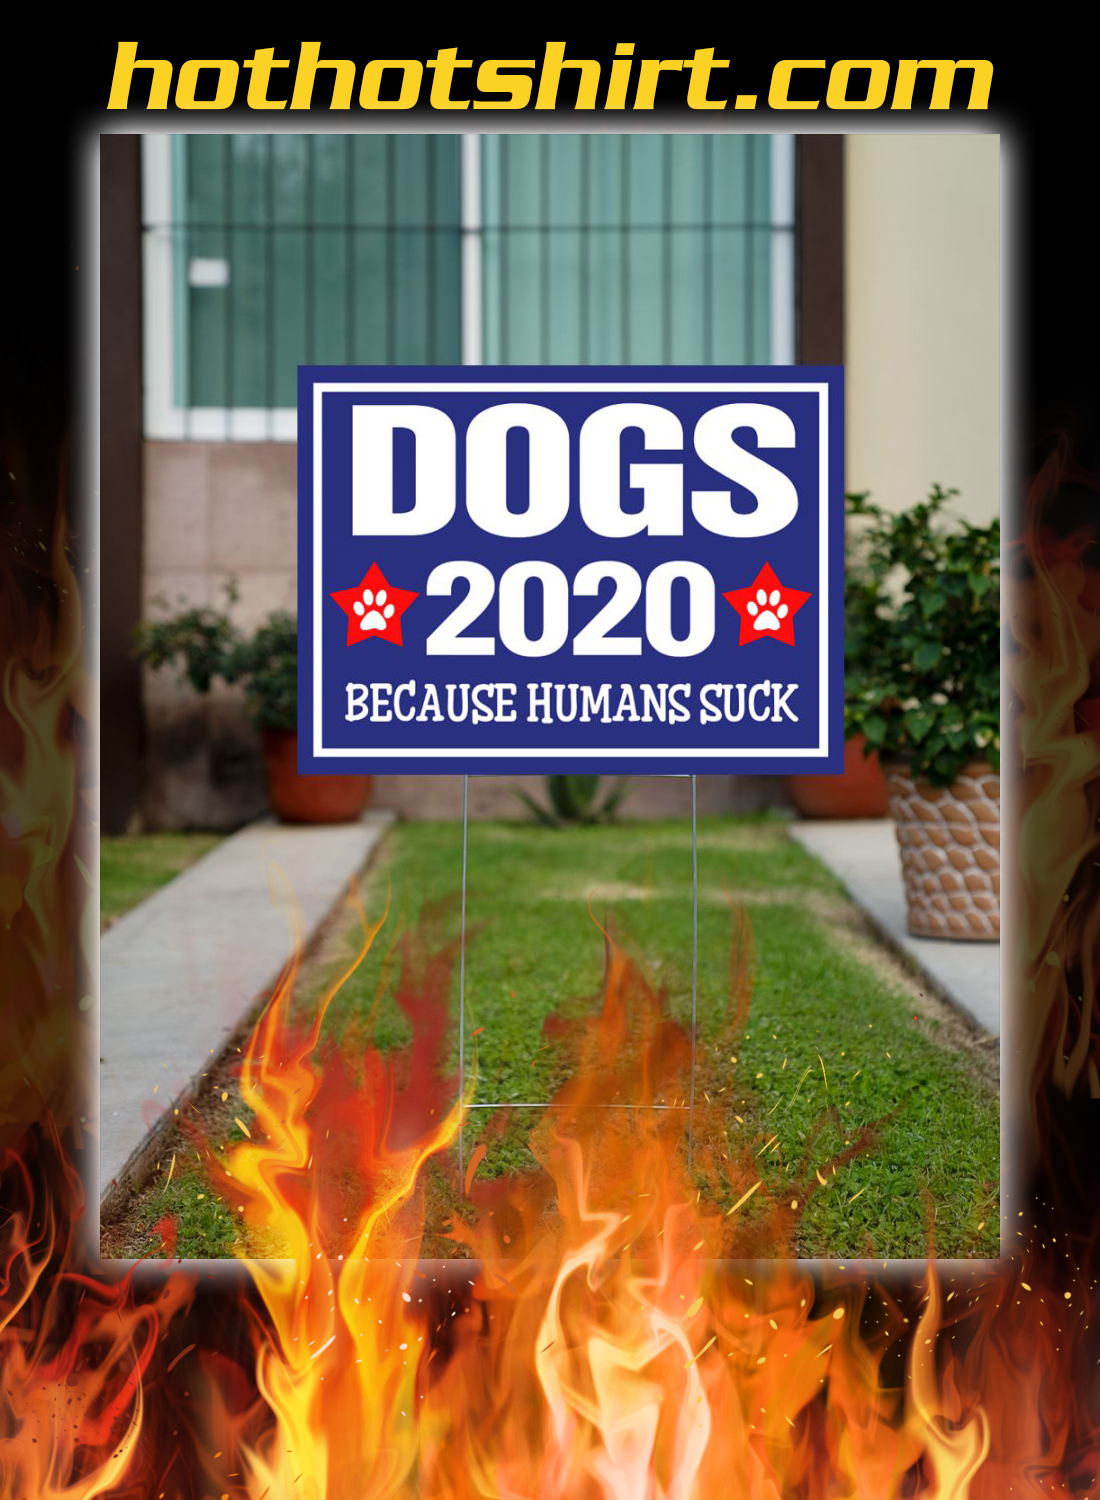 Dogs 2020 because humans suck yard sign 2